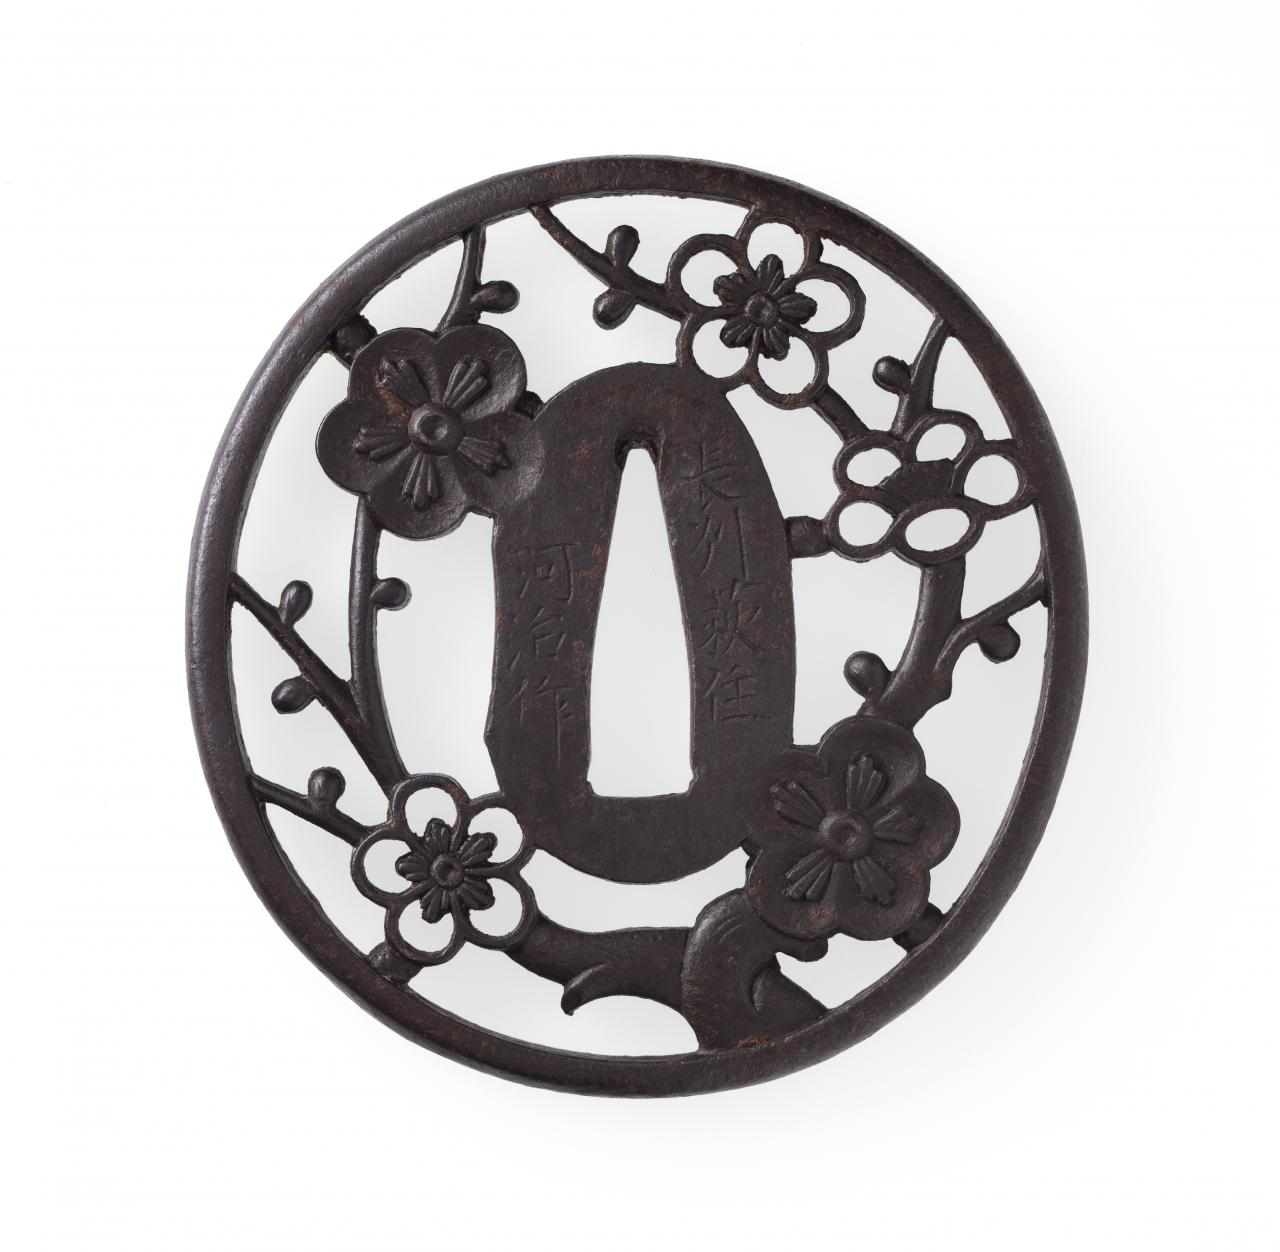 Sword guard with plum tree design